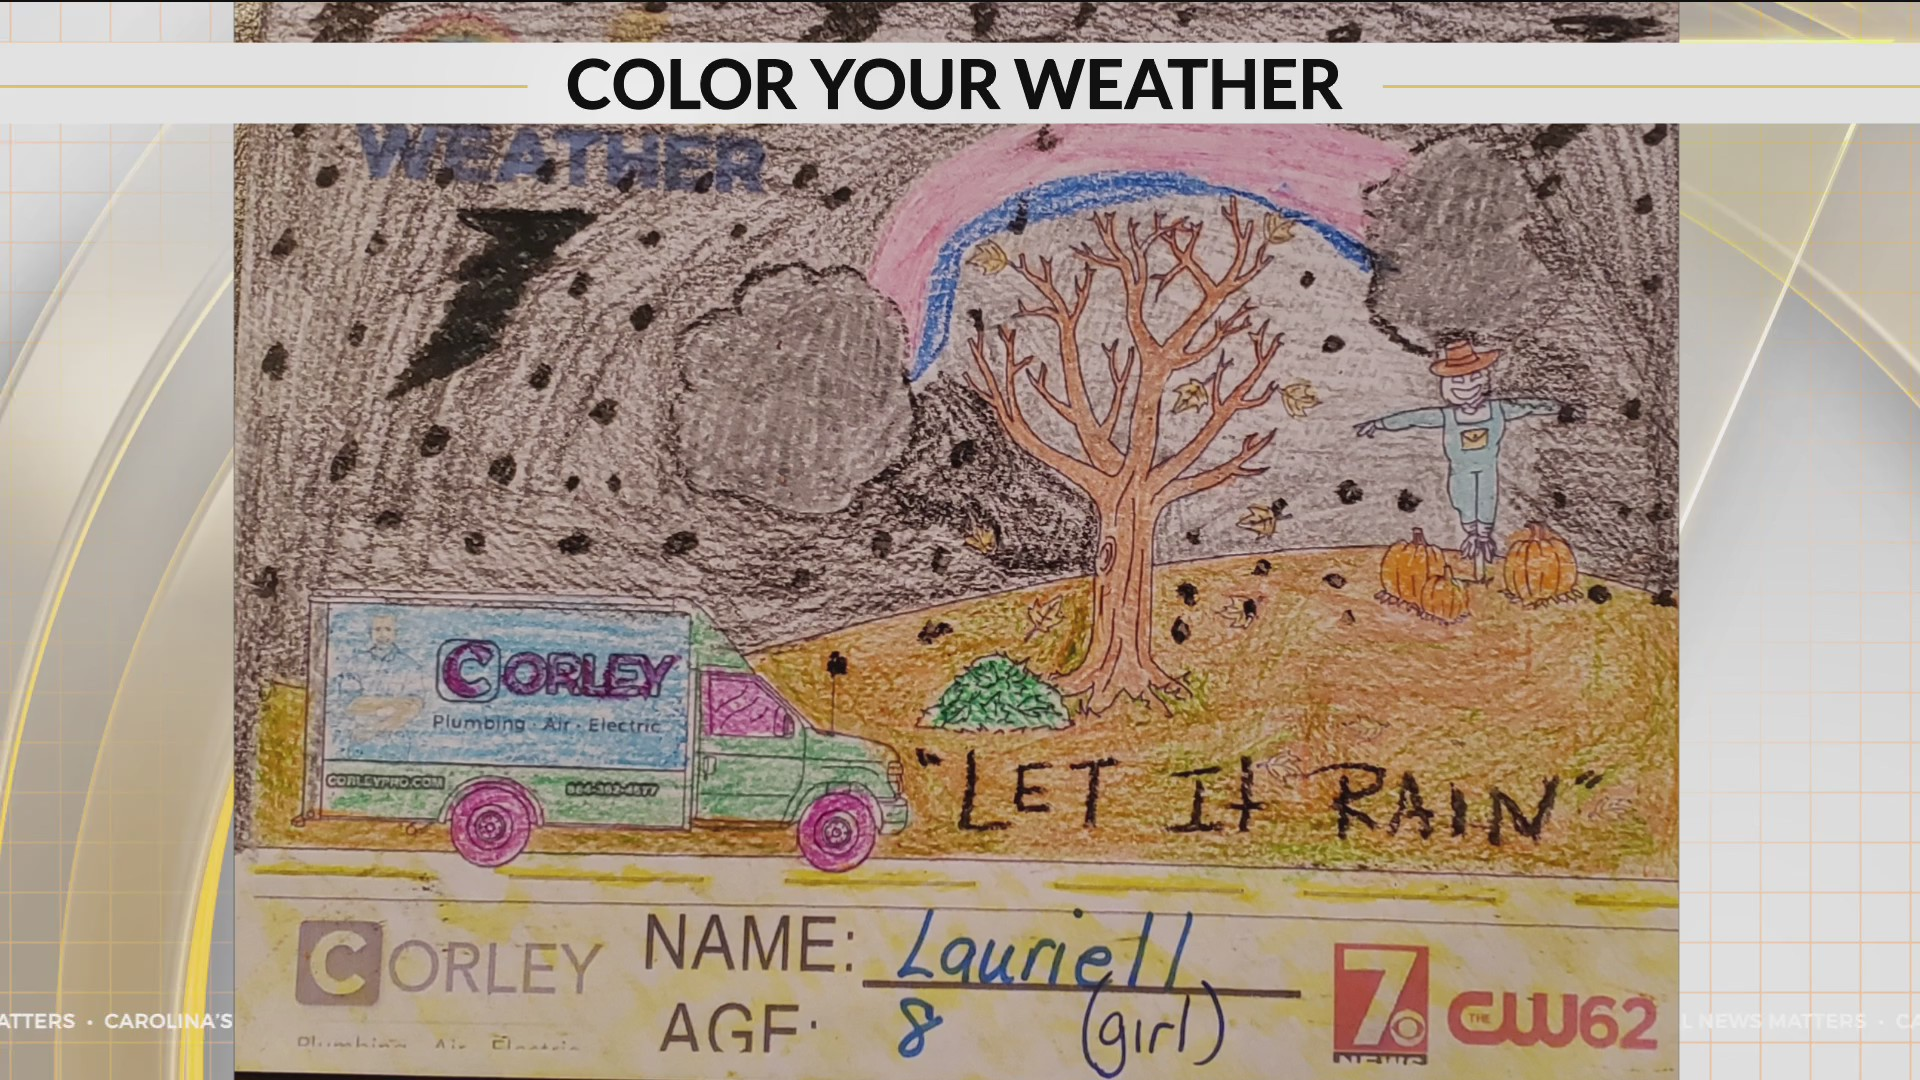 Here is the latest Color Your Weather art from Lauriell.